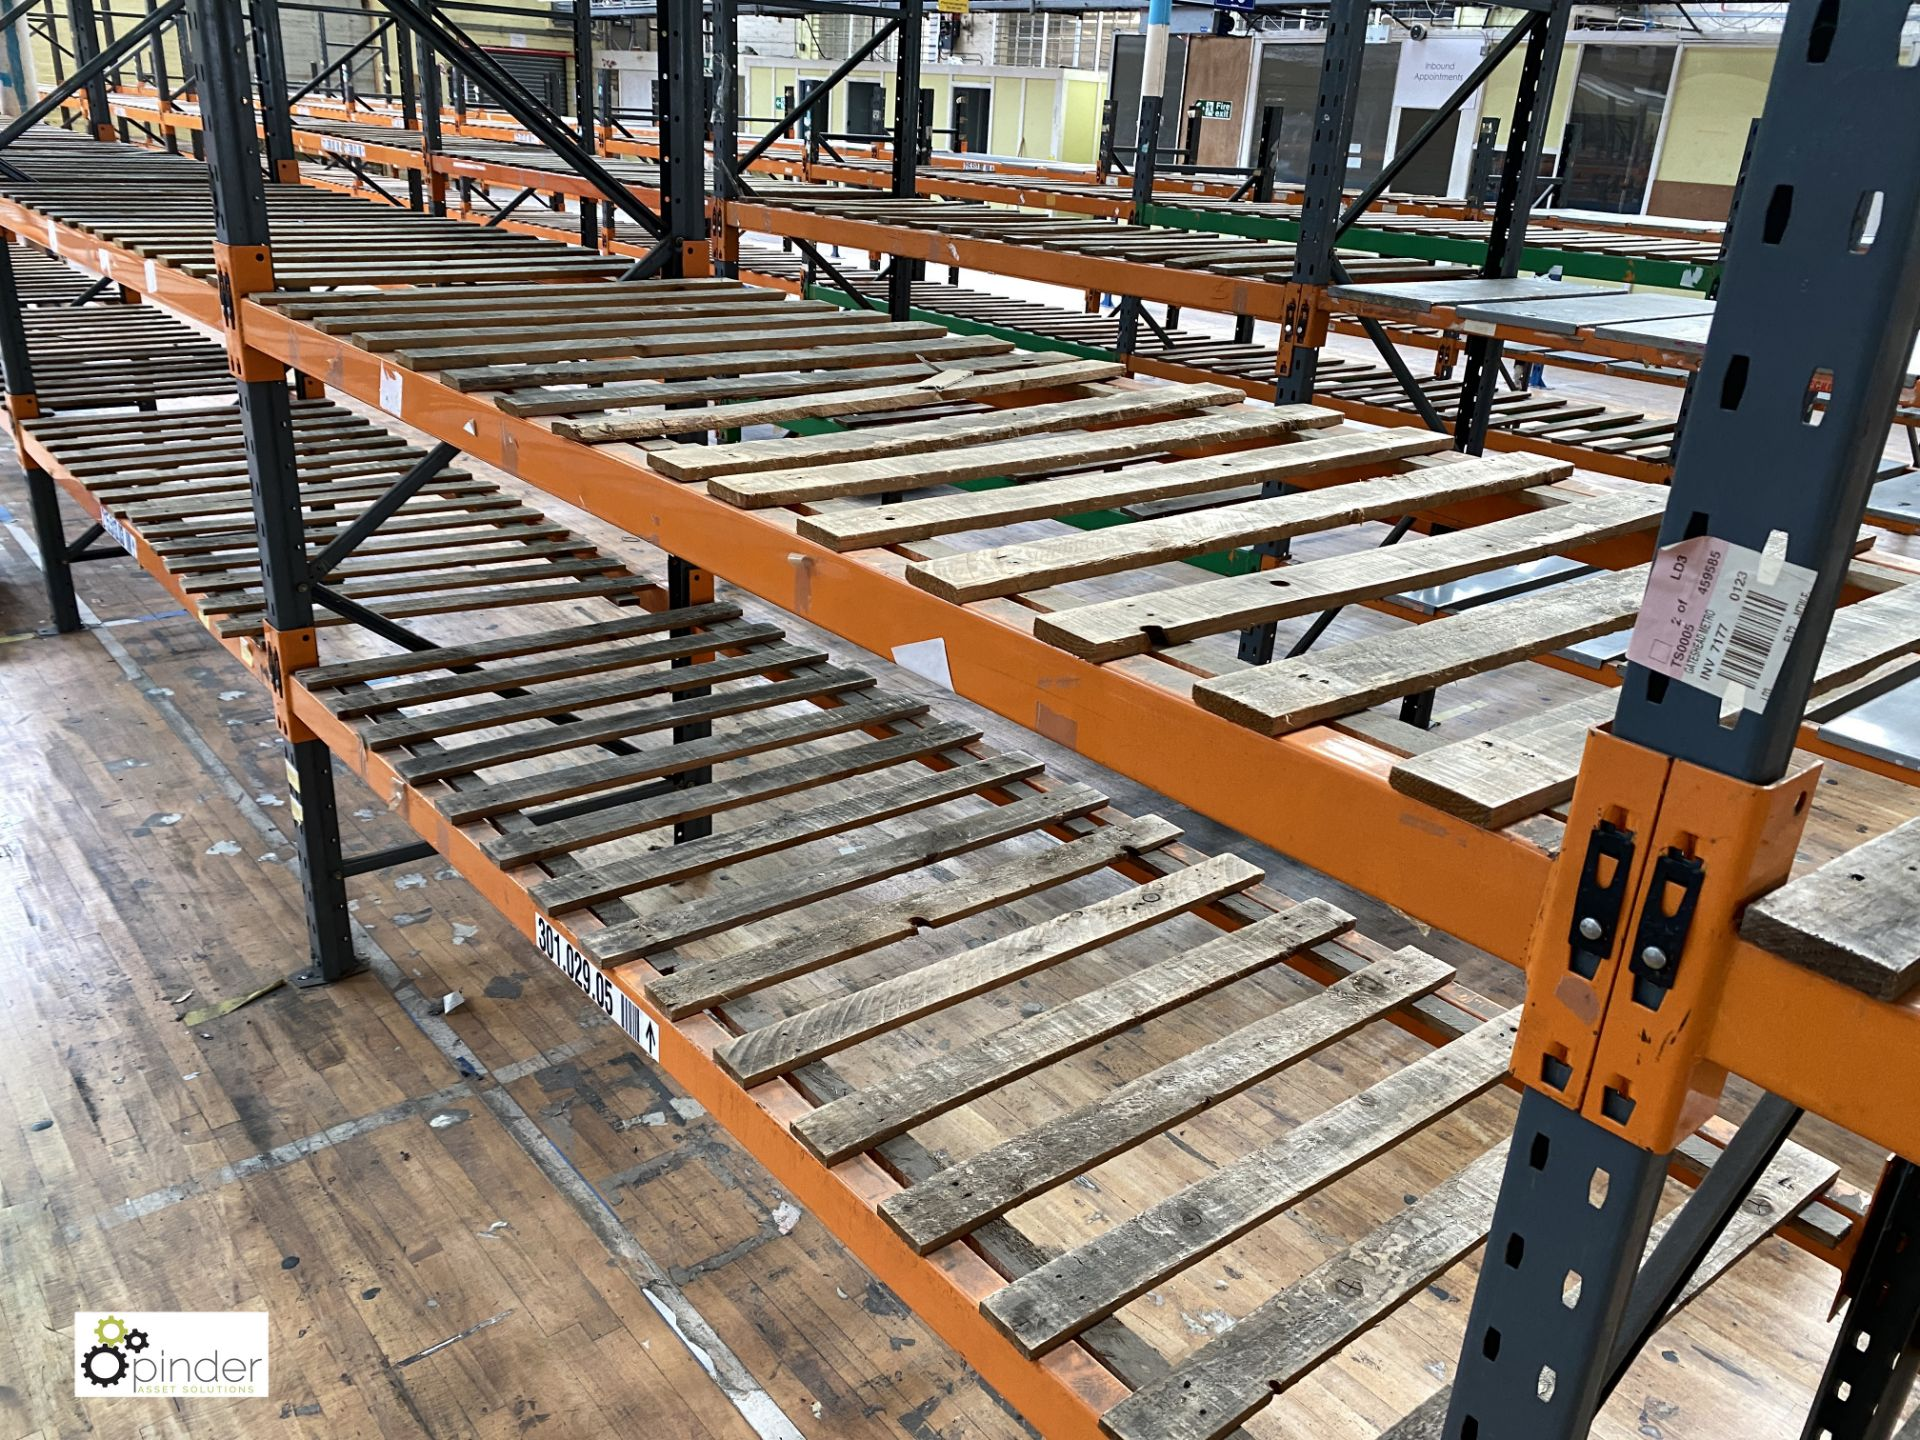 12 bays Dexion Speedlock boltless Racking, comprising 12 uprights 2440mm x 910mm, 1 upright 1835mm x - Image 5 of 5